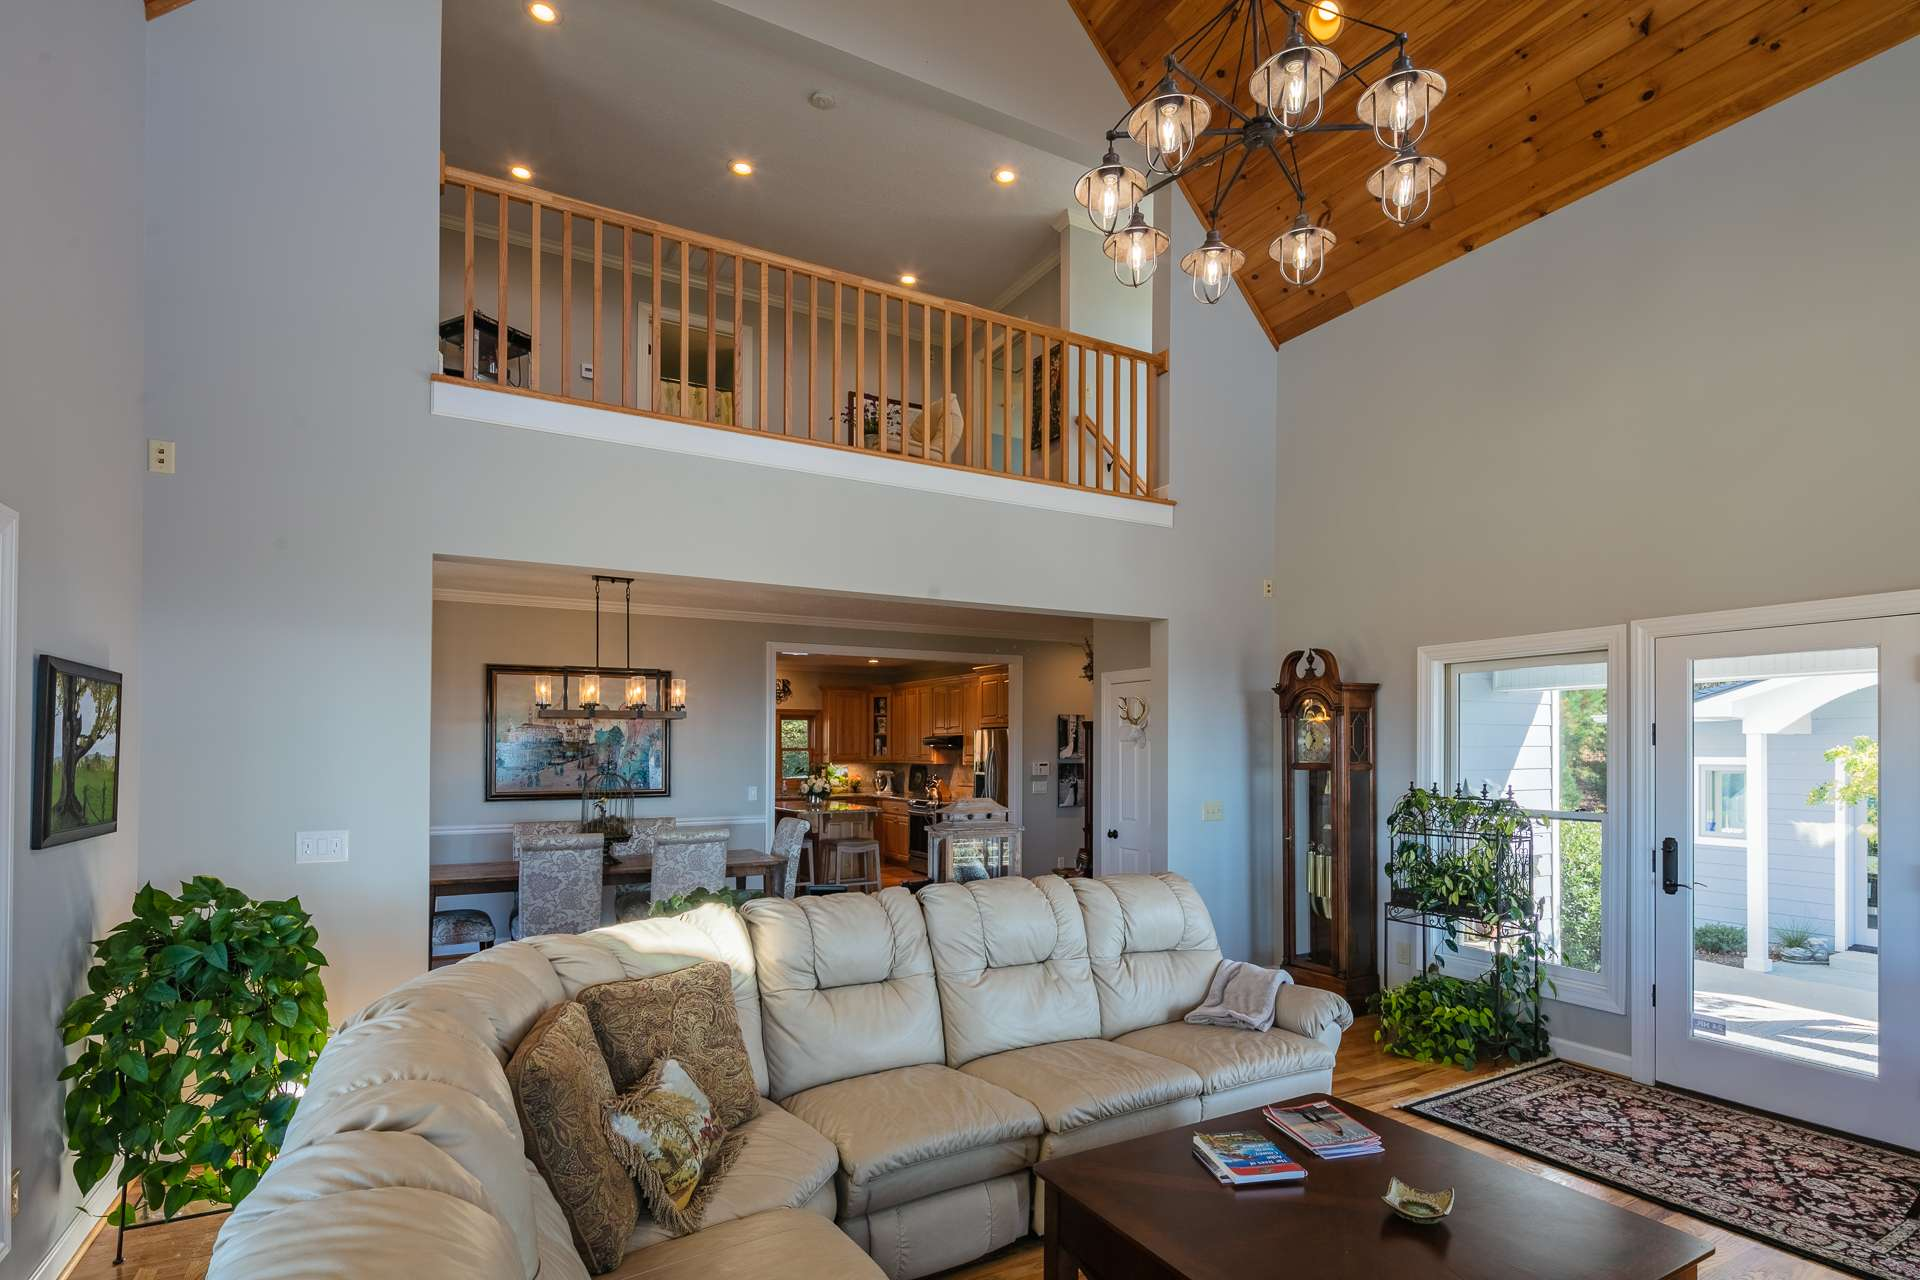 An open floor plan includes the living area and dining area that is open to the kitchen.